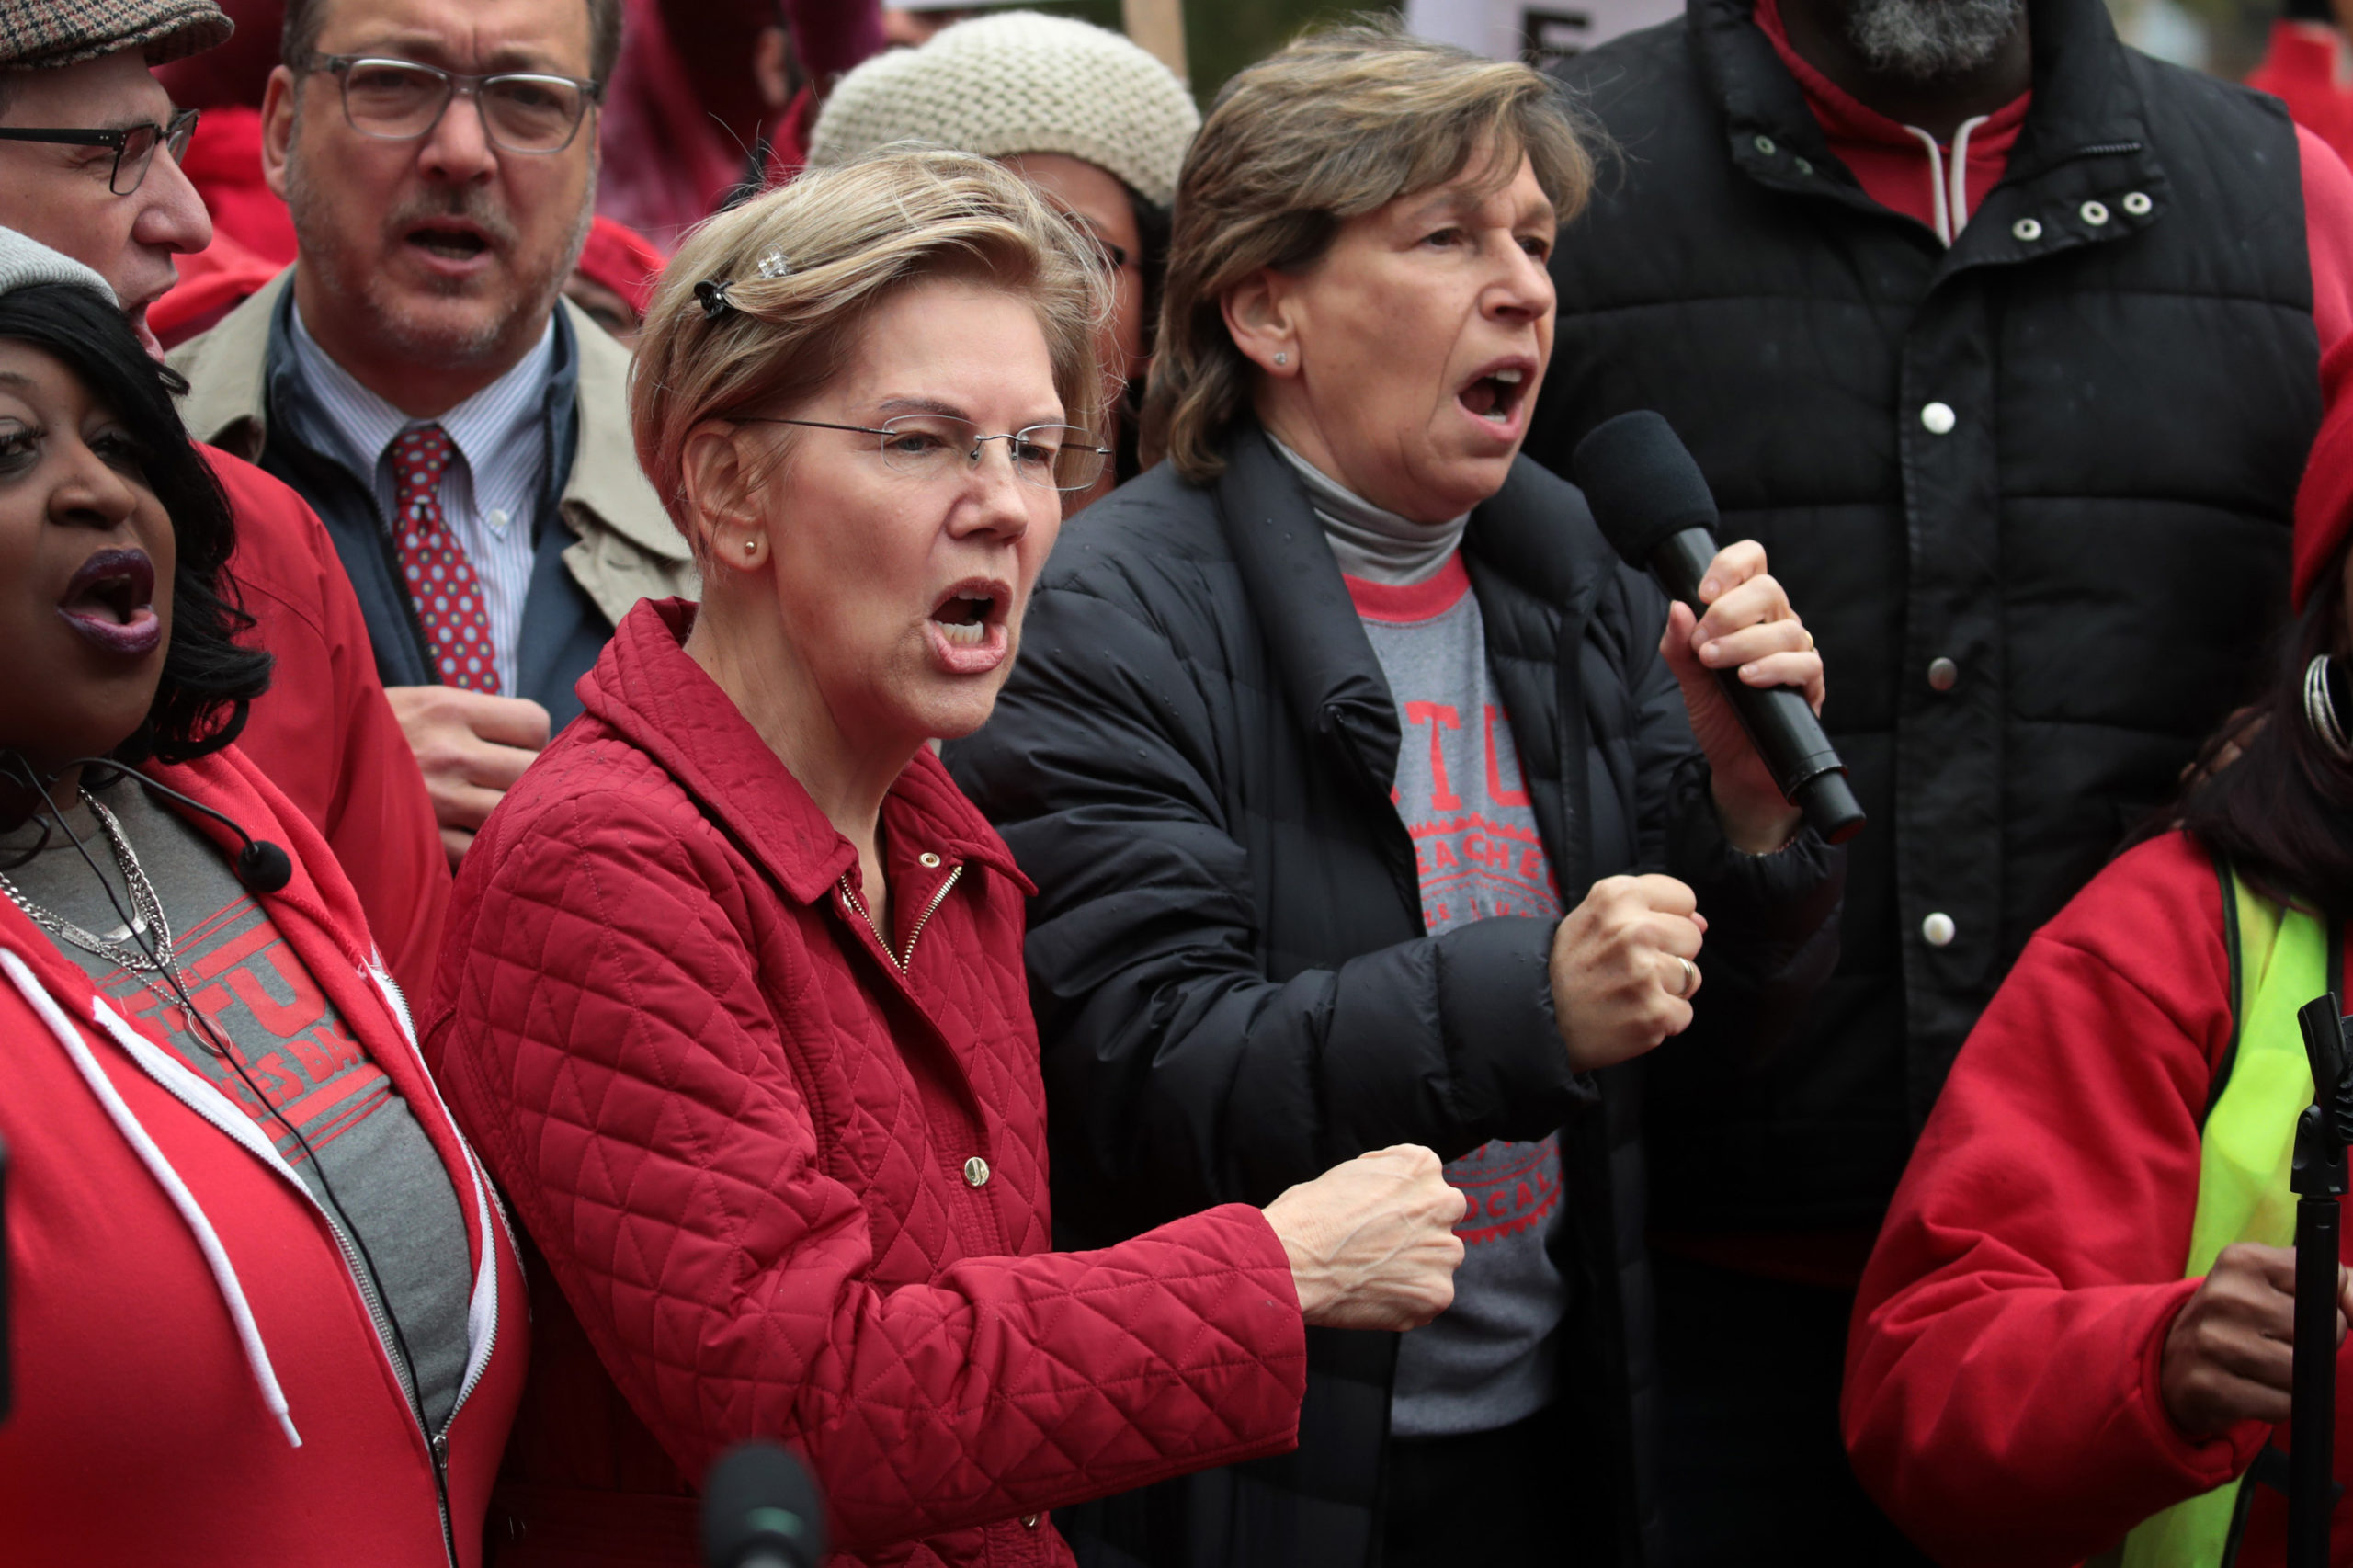 CHICAGO, ILLINOIS - OCTOBER 22: Democratic presidential candidate Sen. Elizabeth Warren (D-MA) (L) and American Federation of Teachers (AFT) president Randi Weingarten visit with striking Chicago teachers at Oscar DePriest Elementary School on October 22, 2019 in Chicago, Illinois. About 25,000 Chicago school teachers went on strike last week after the Chicago Teachers Union (CTU) failed to reach a contract agreement with the city. With about 300,000 students, Chicago has the third largest public school system in the nation. (Photo by Scott Olson/Getty Images)